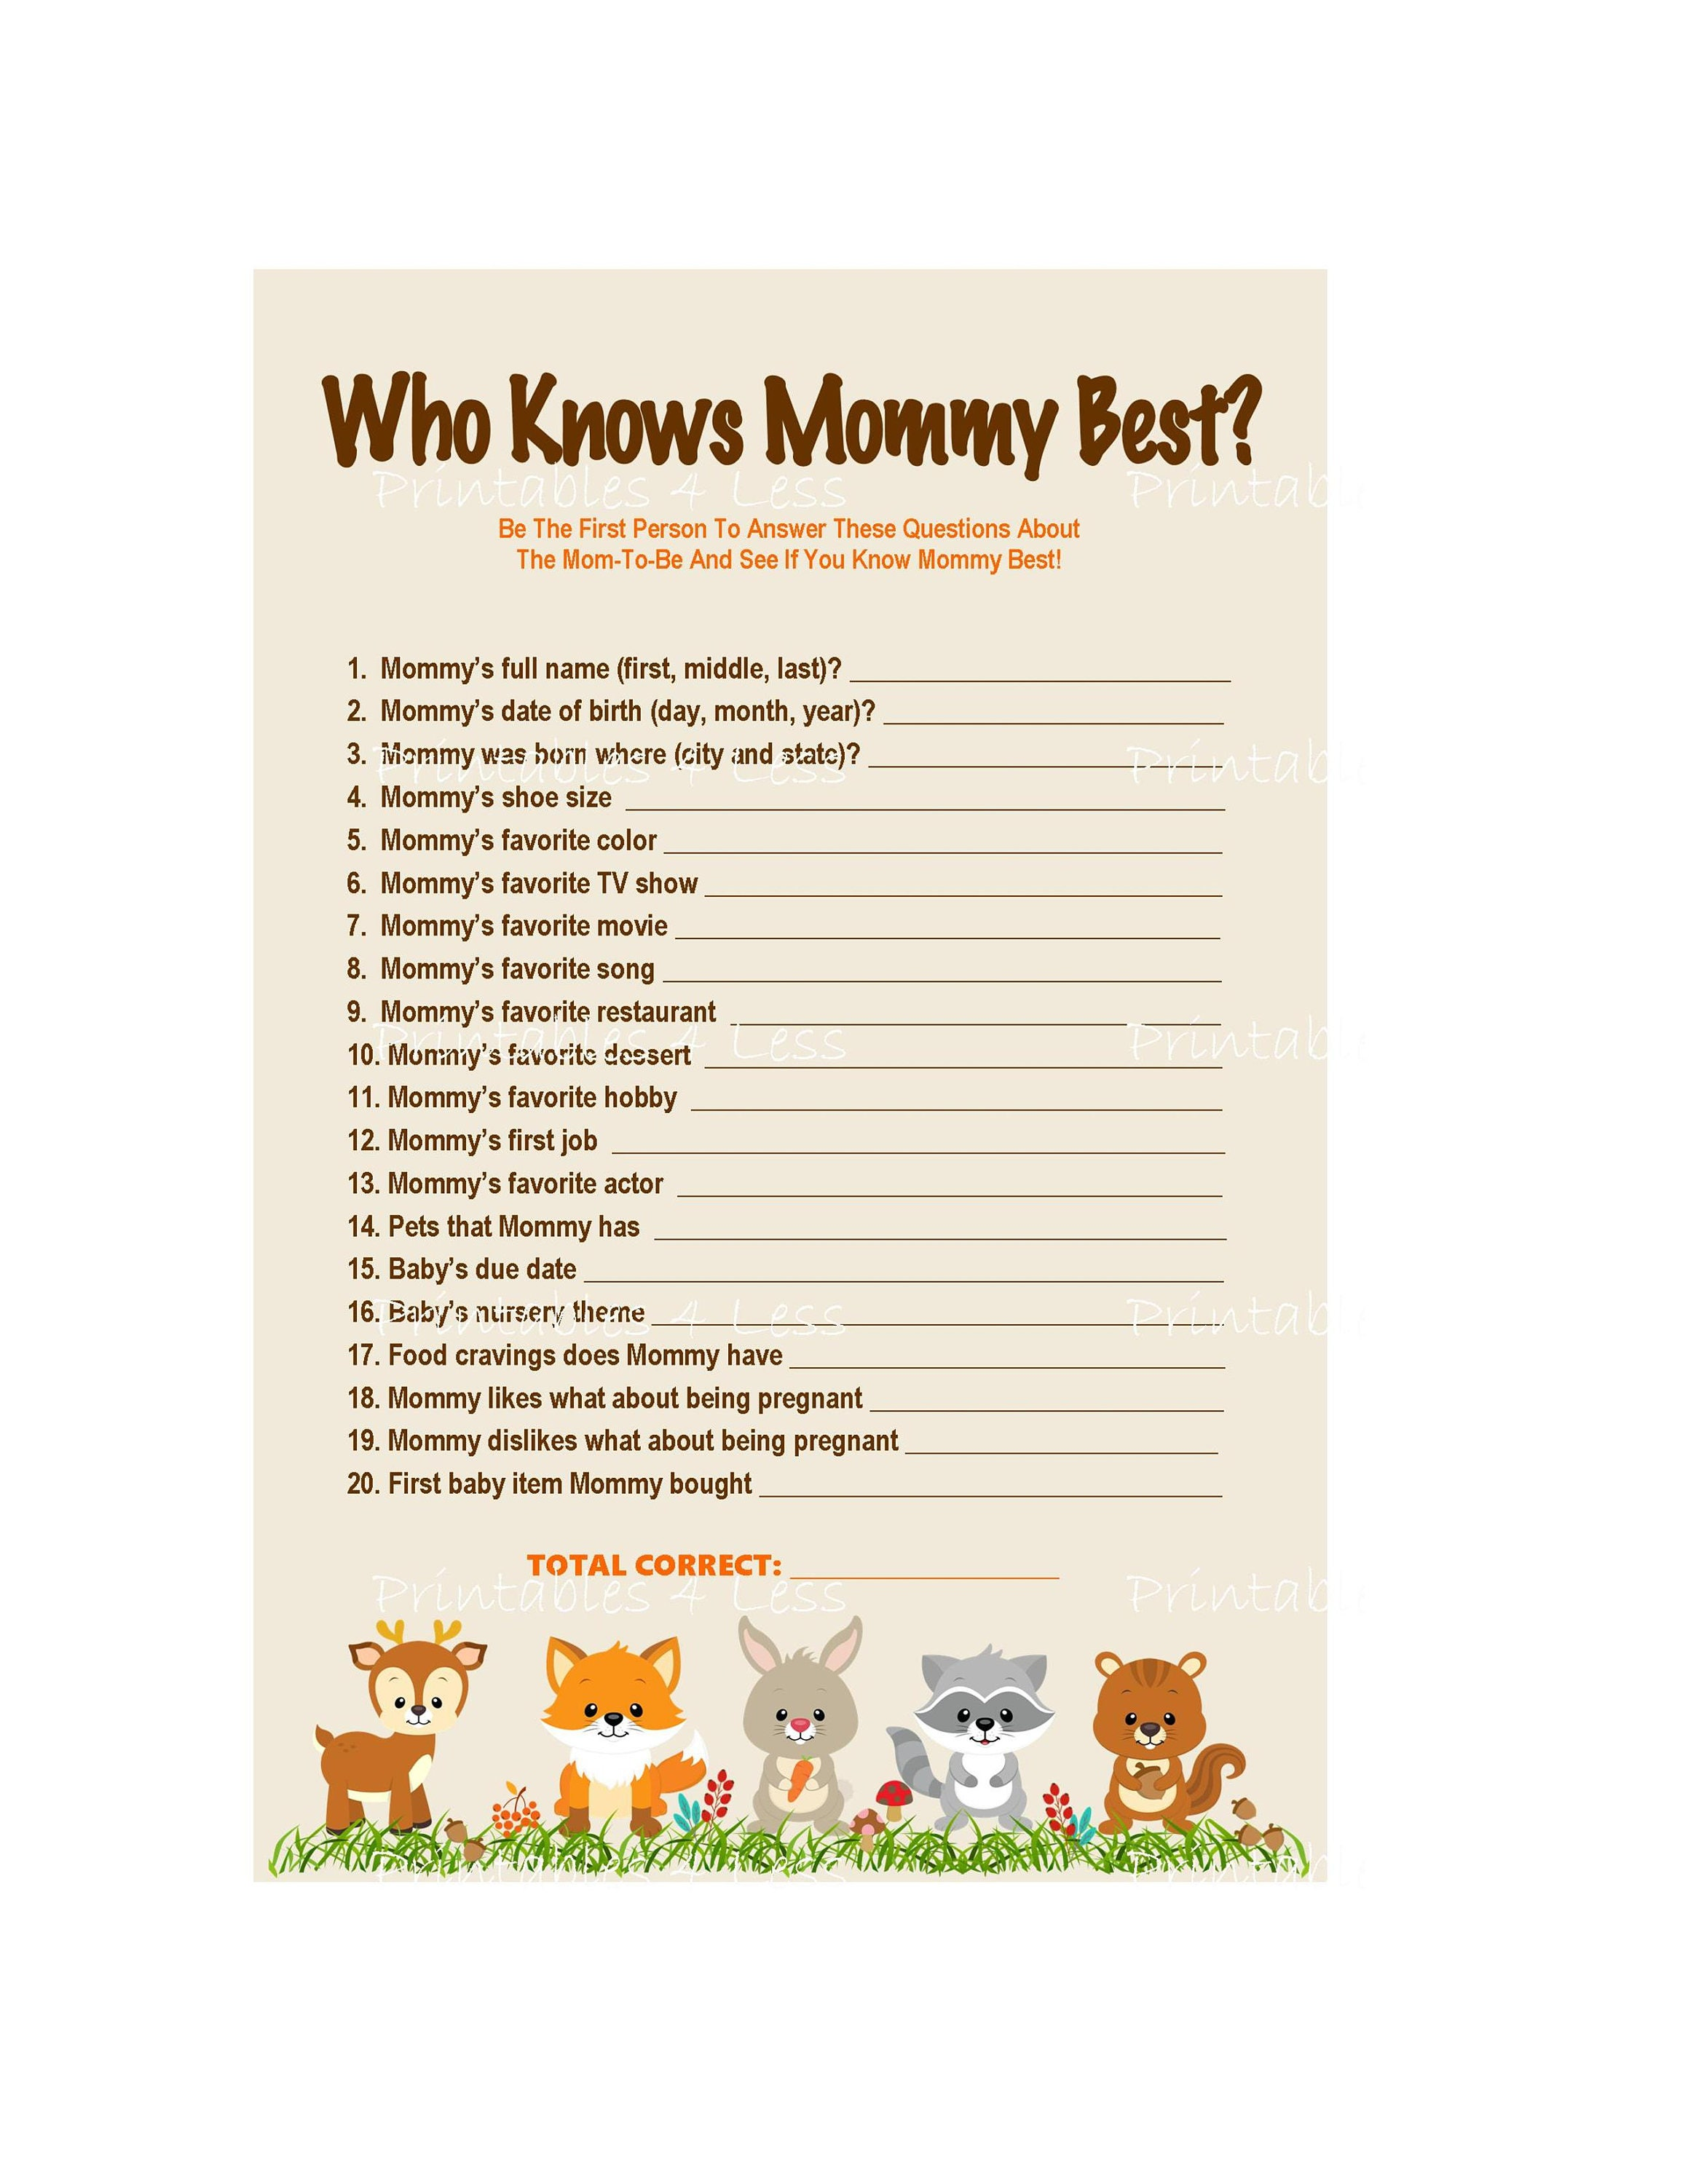 It's just a photo of Stupendous Who Knows Mommy Best Free Printable